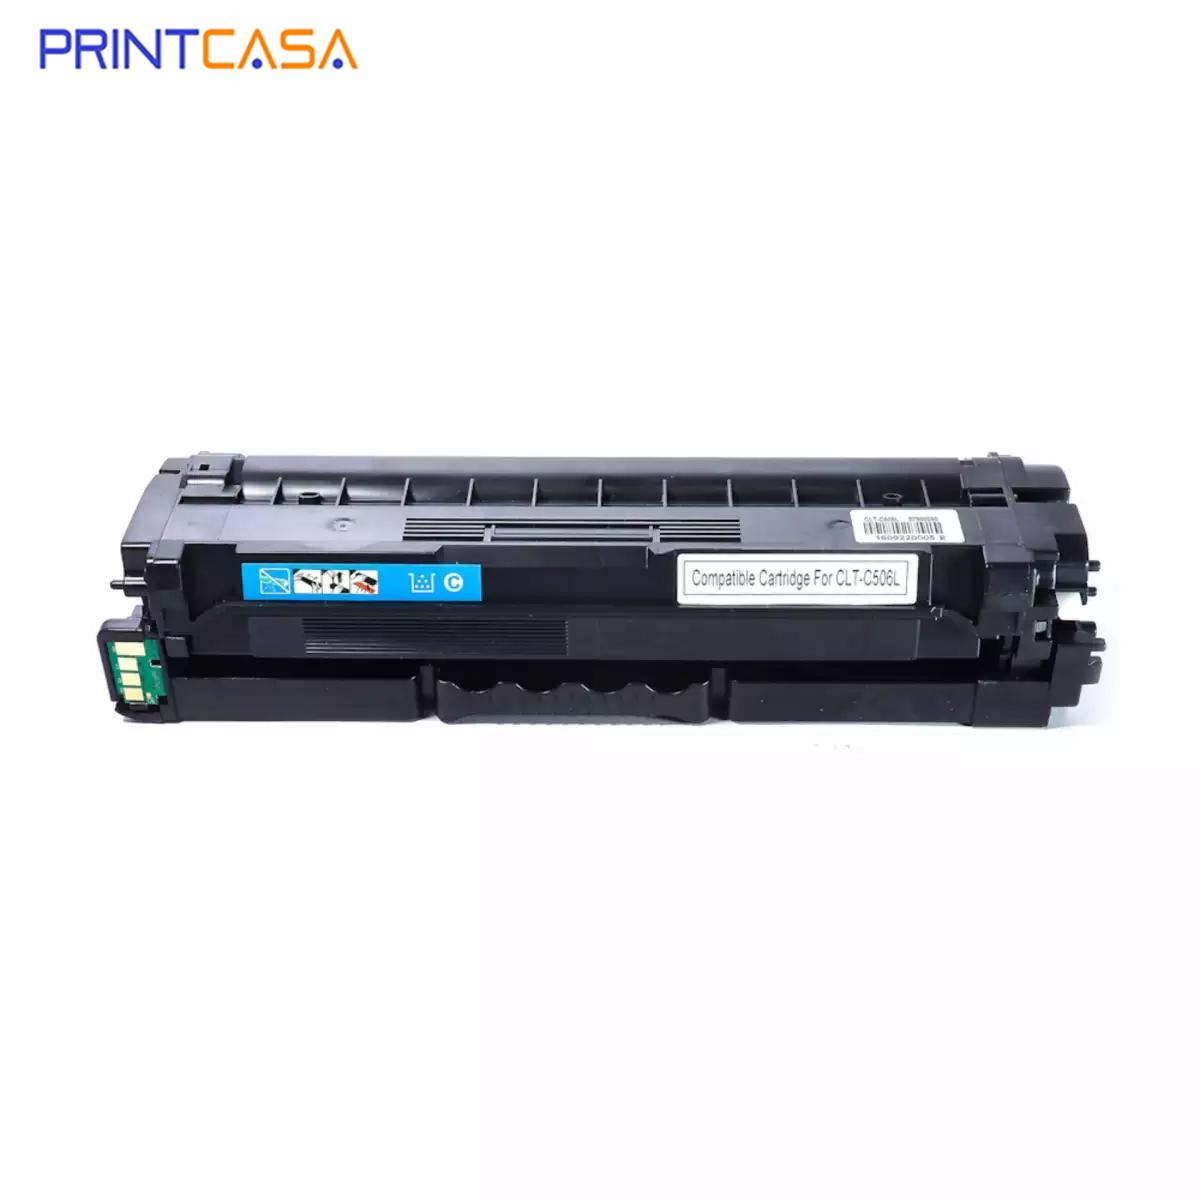 Price Comparison For Samsung Clt C506L Cyan Compatible Toner Clp 680Dw Clx 6260Fw